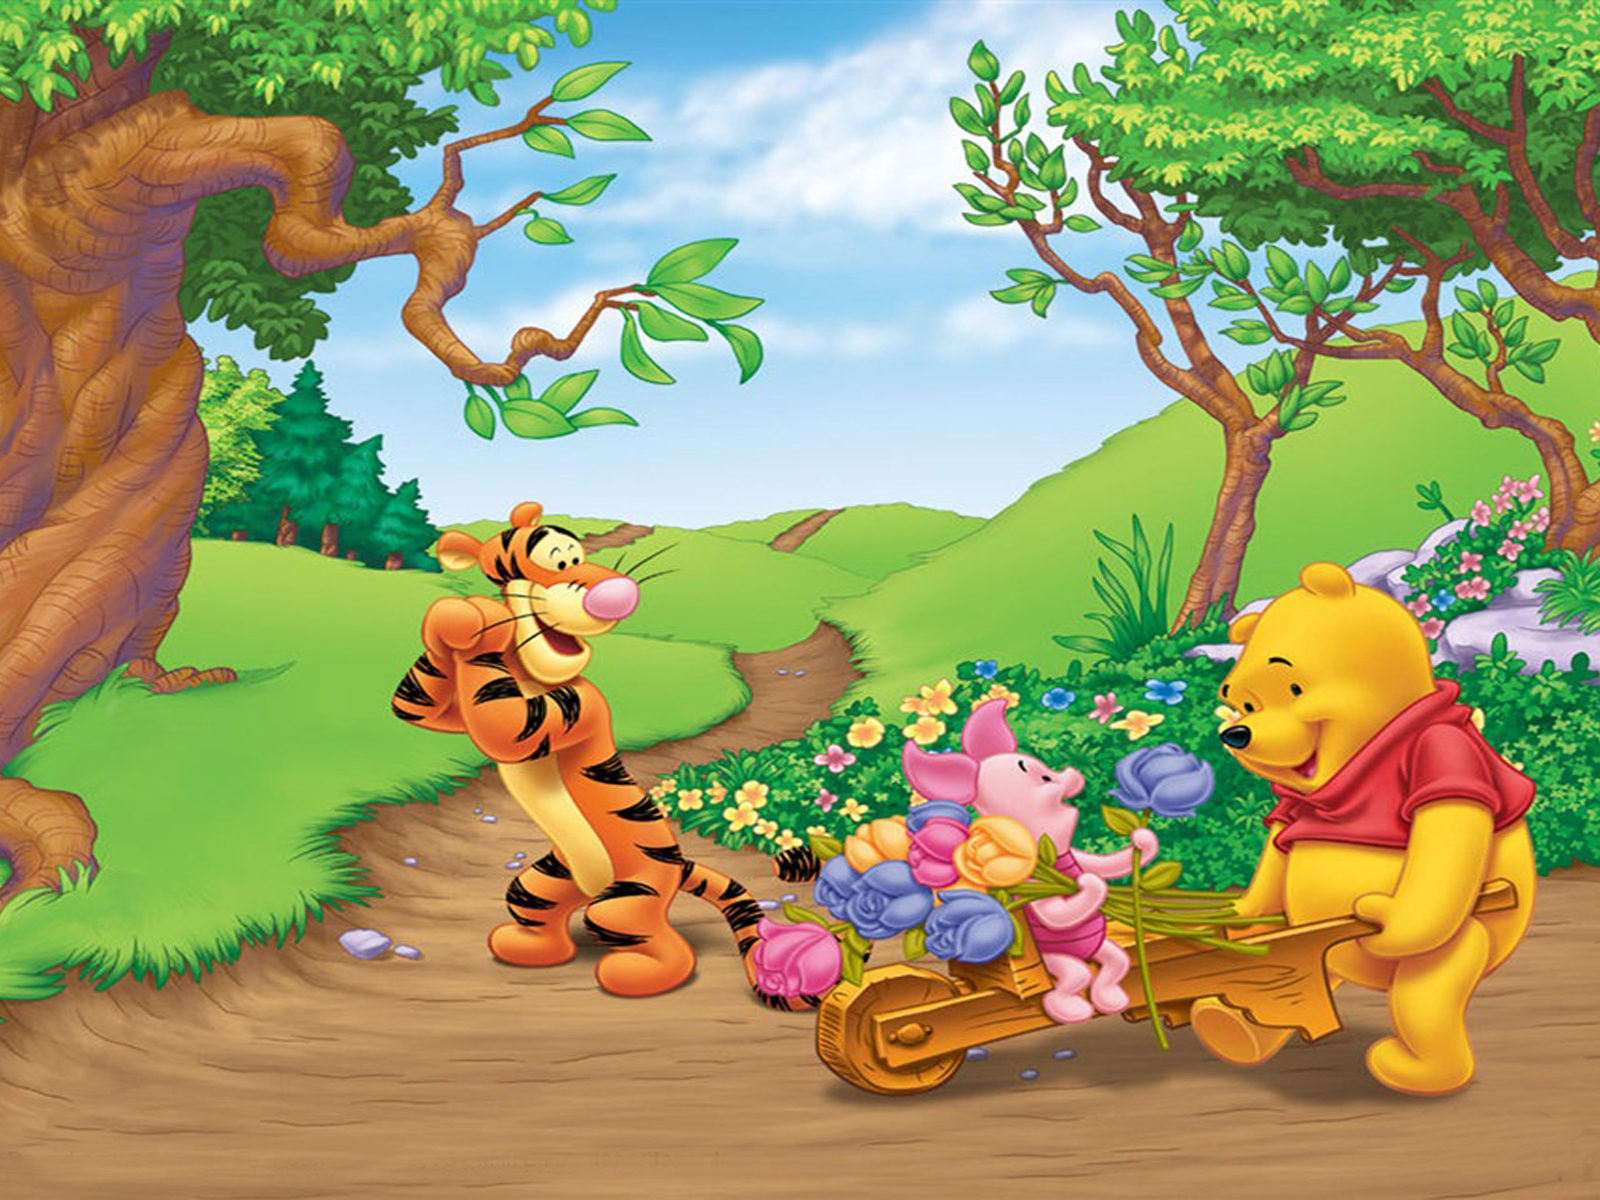 Piglet Wallpaper Iphone Tigger Piglet And Winnie The Pooh Spring Picking Flower